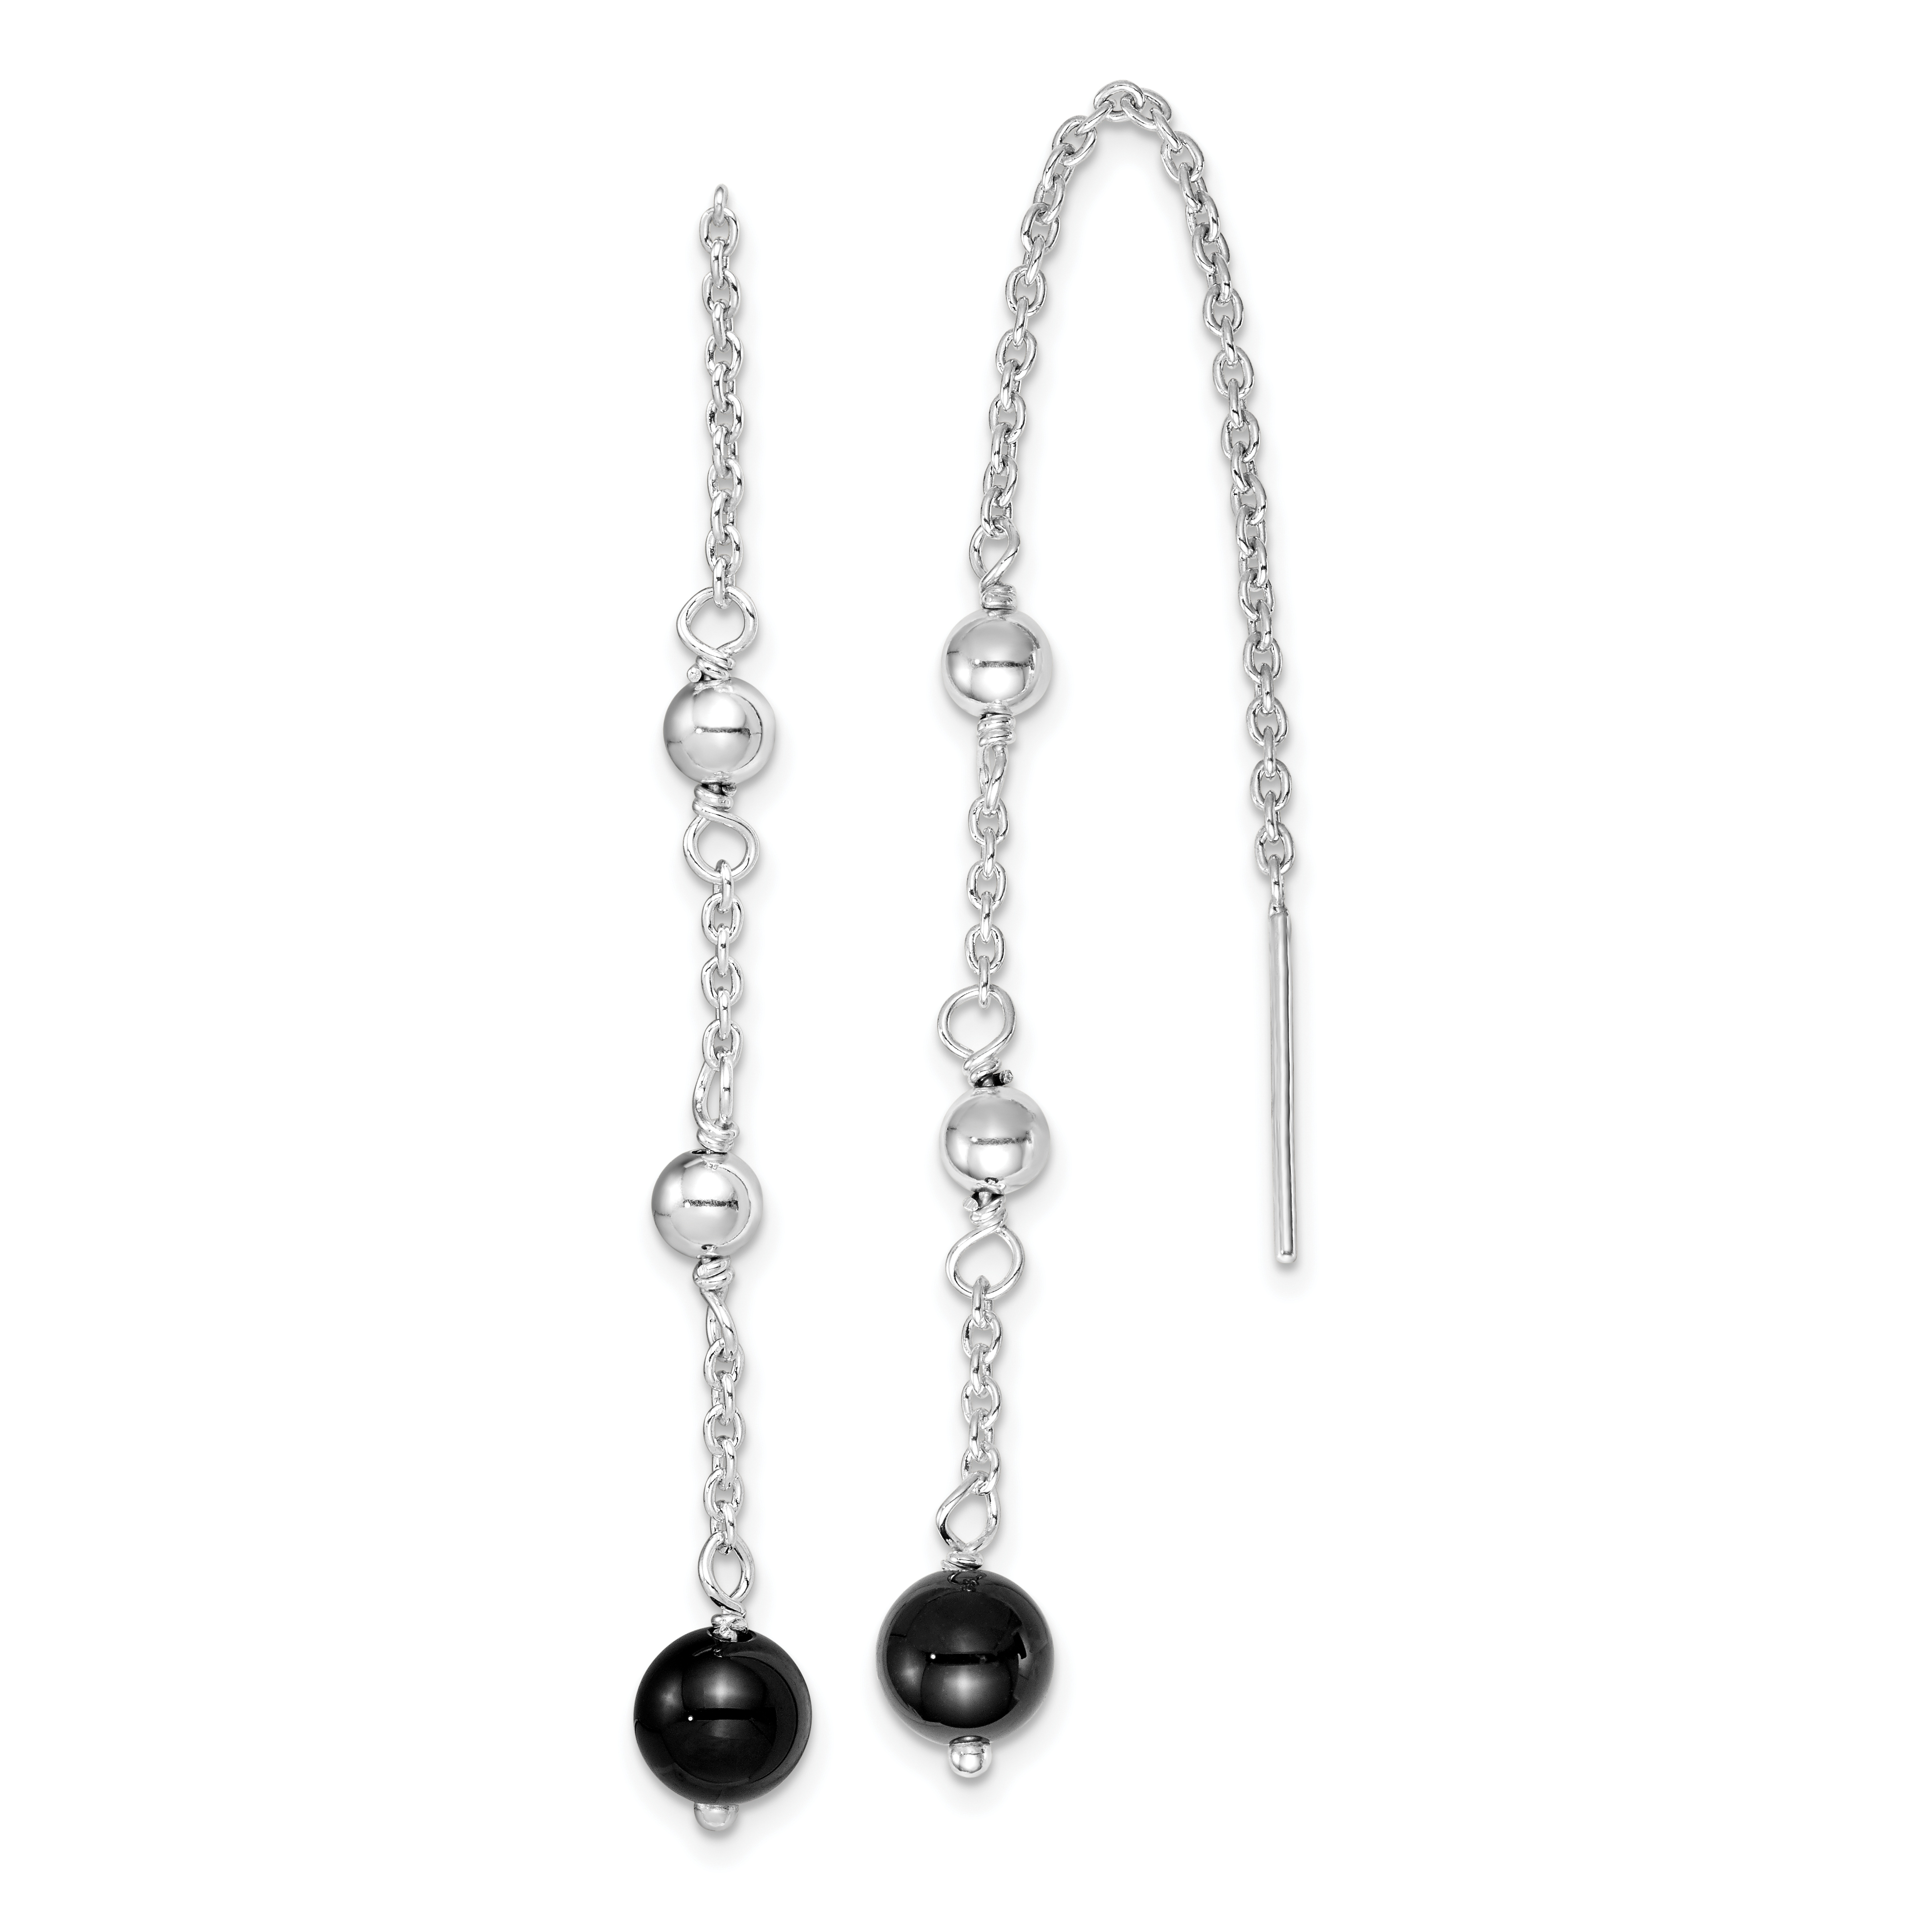 Image Is Loading Sterling Silver Rhodium Plated Black Onyx Dangle Earrings